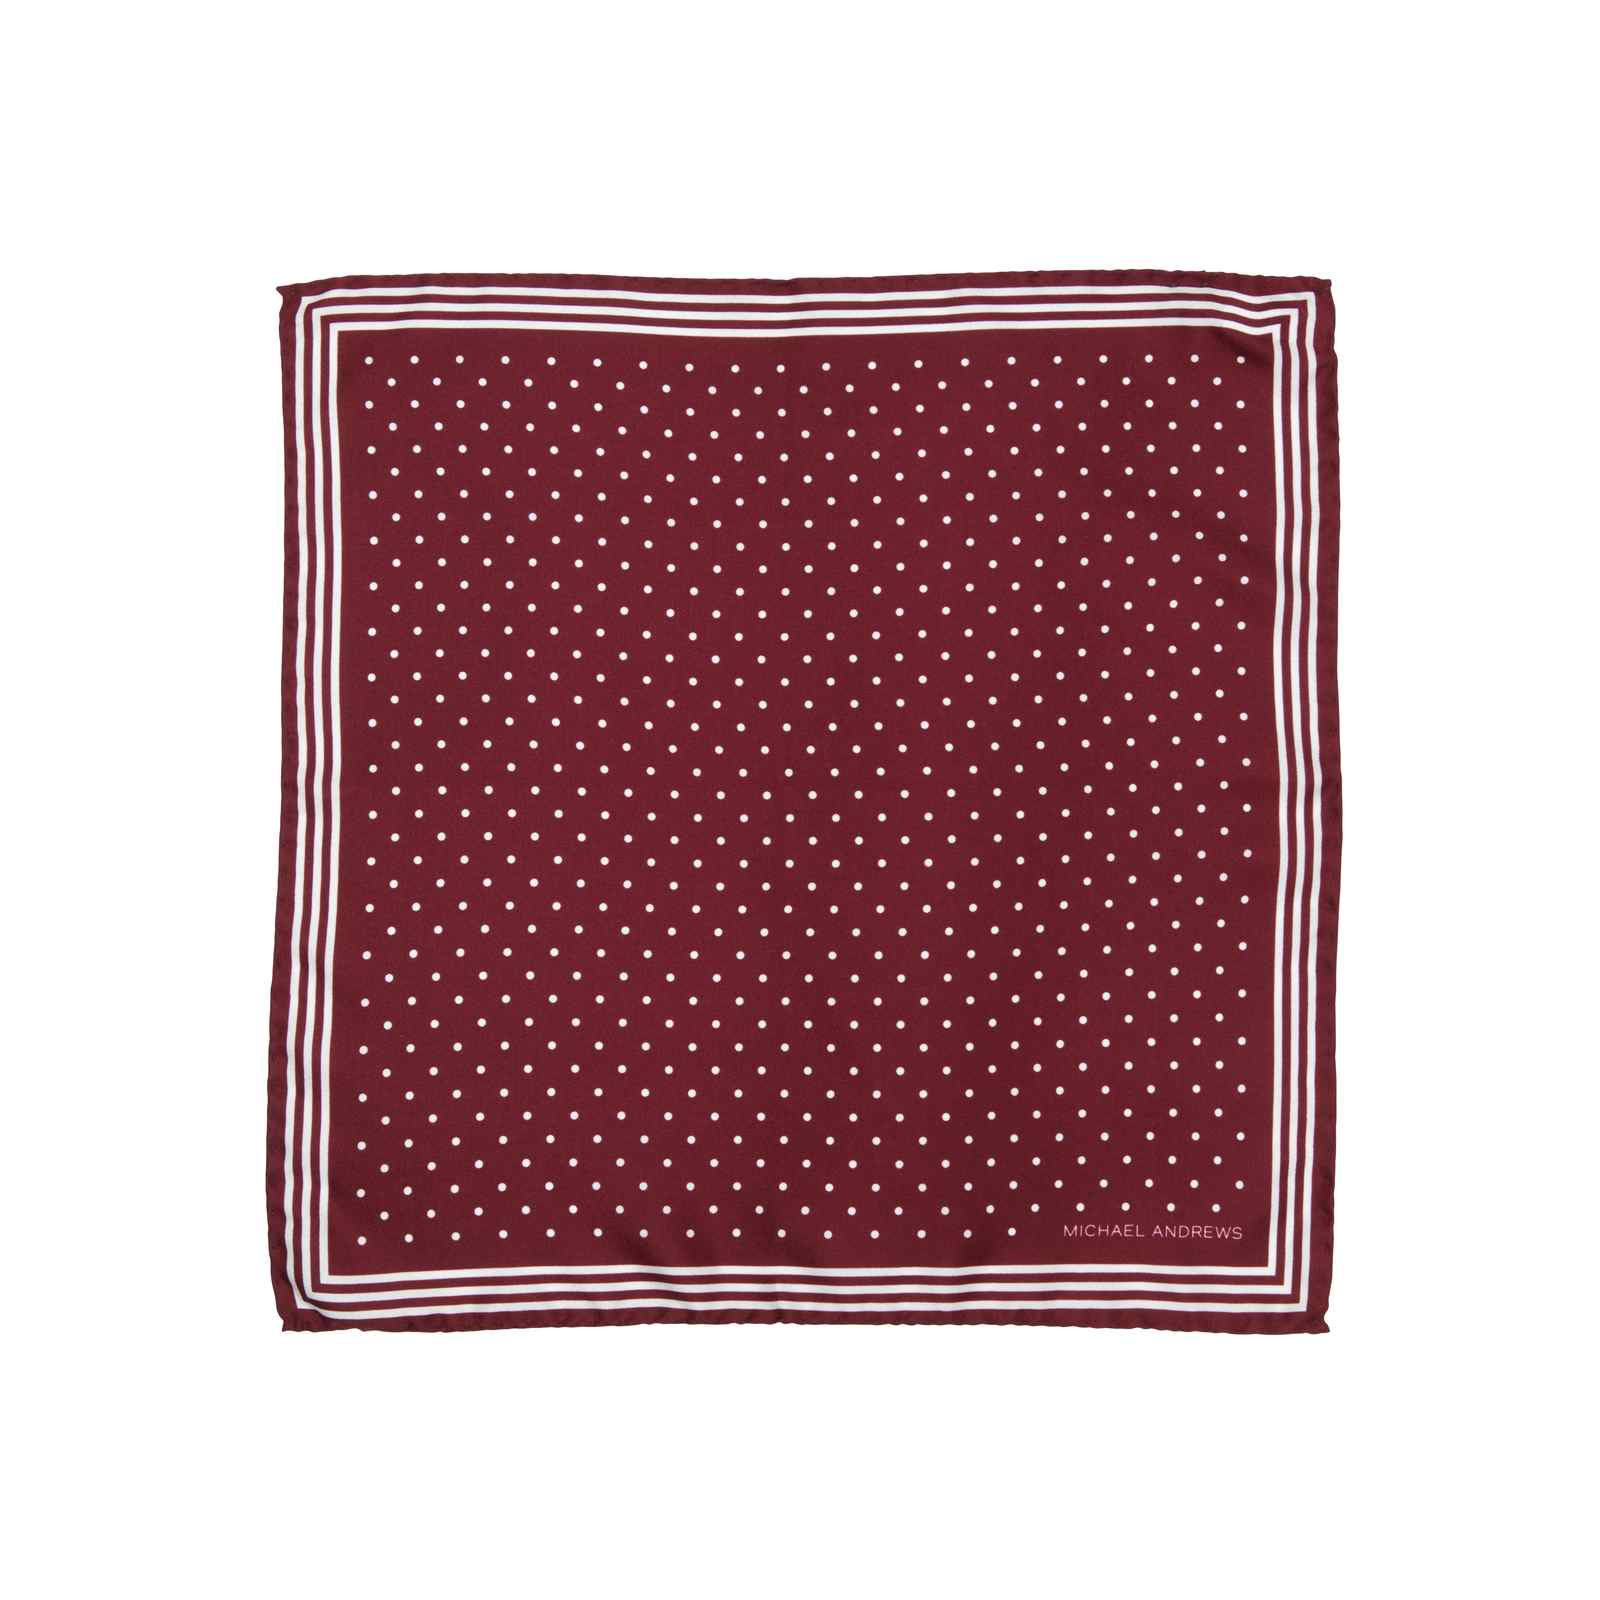 Burgundy Pocket Square with Classic White Polka Dots and Striped Border